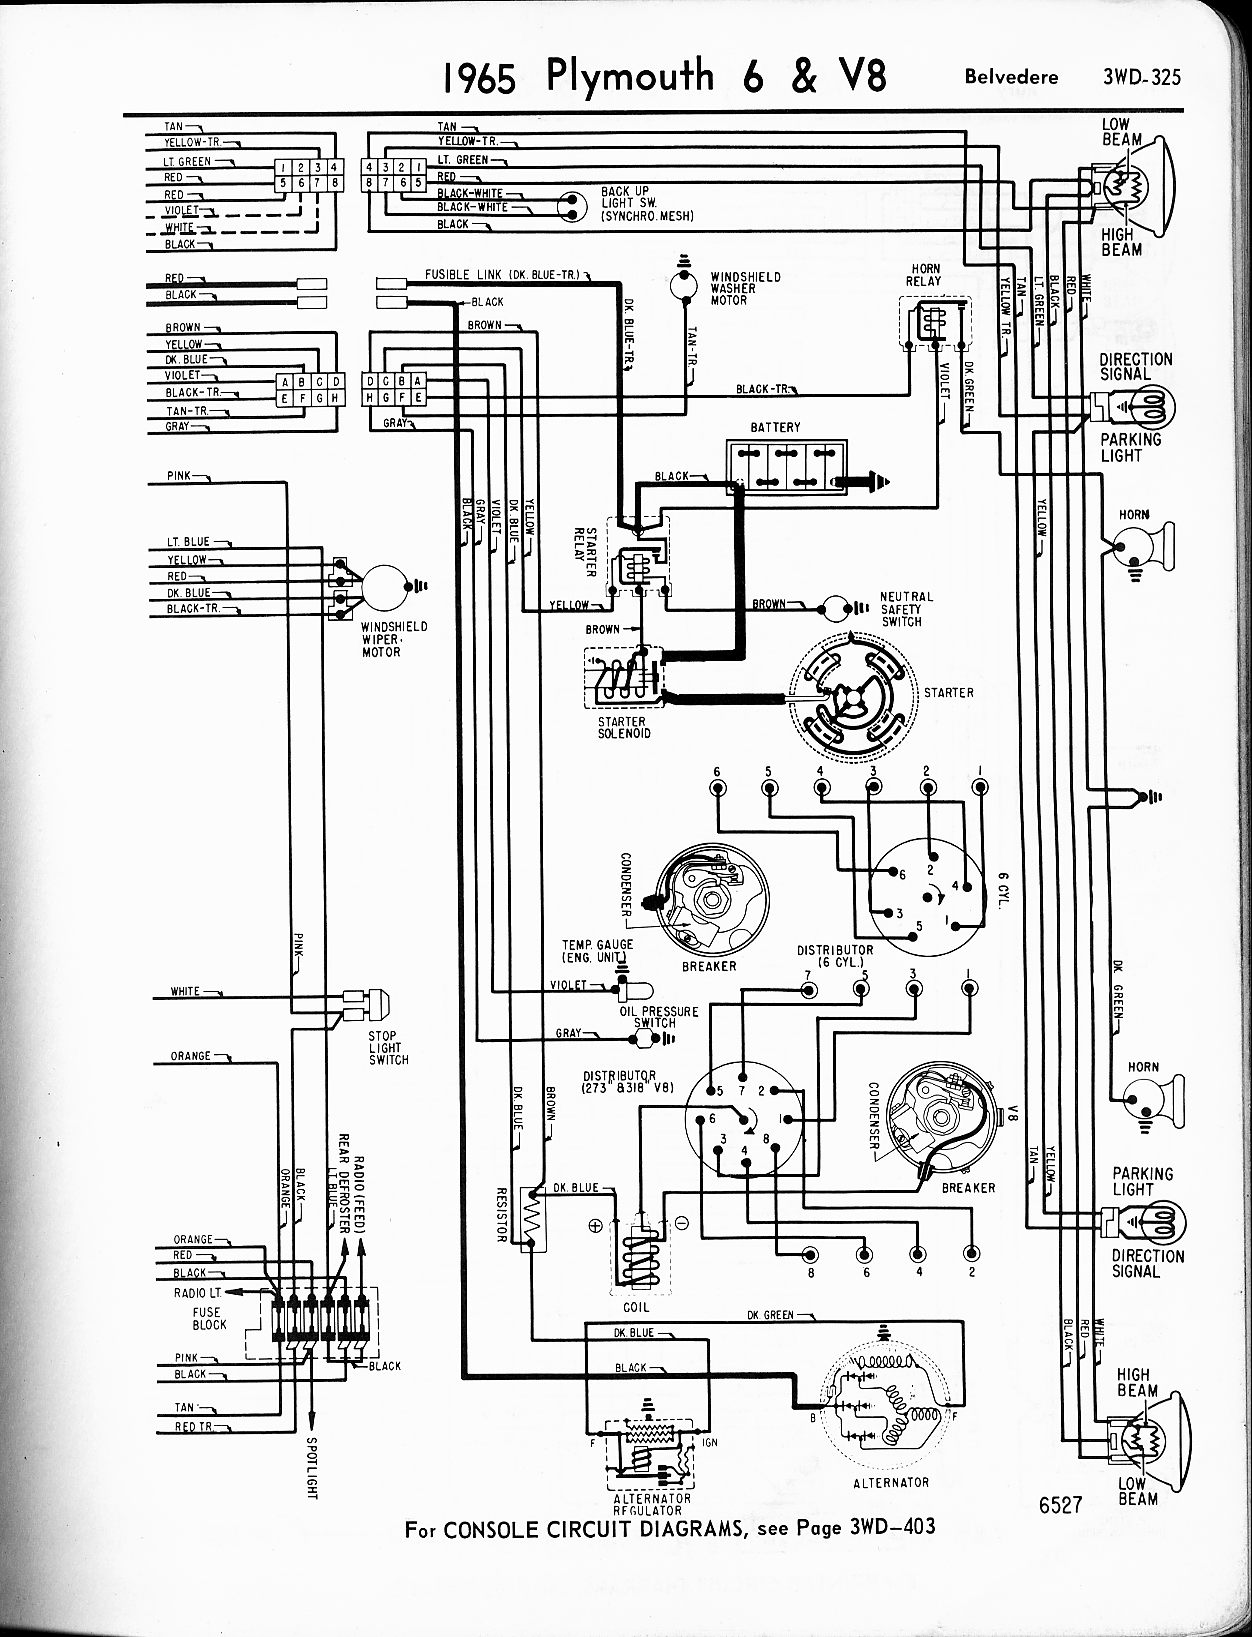 Scamp Wiring Diagram Libraries F100 For 76 Plymouth Valiant Engine Third Levelplymouth Diagrams